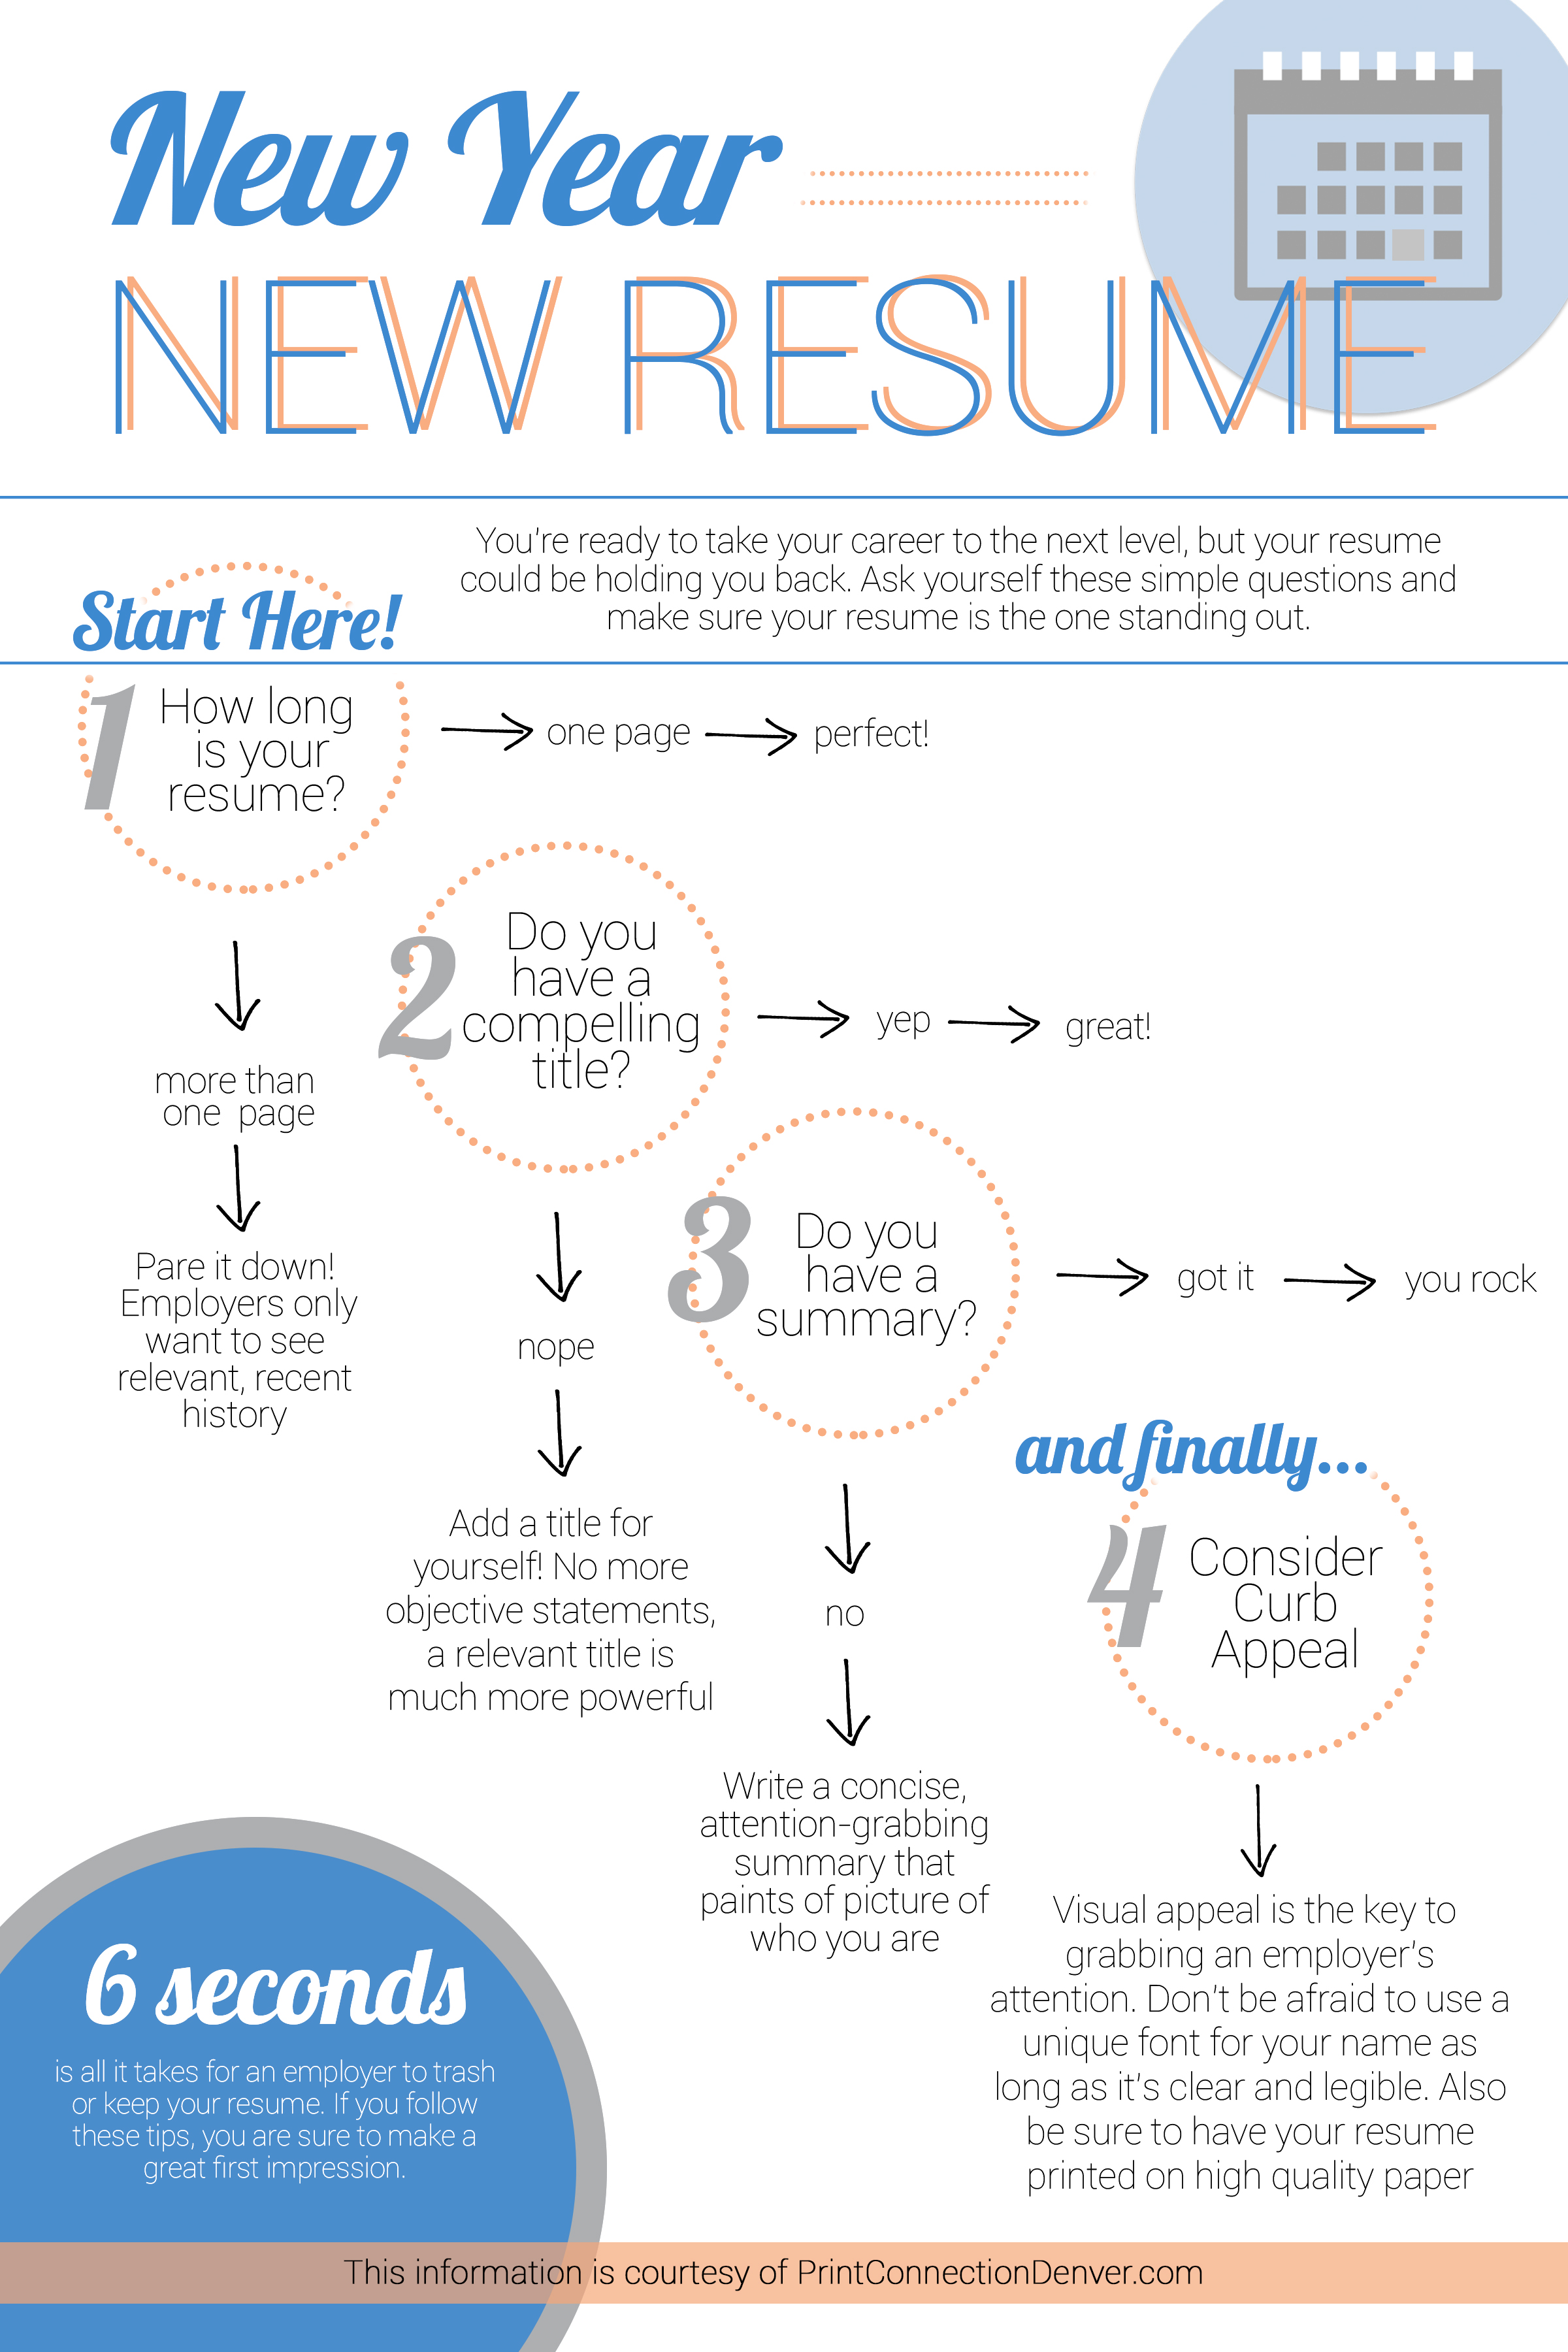 tips for resume success denver printing services resume infographic